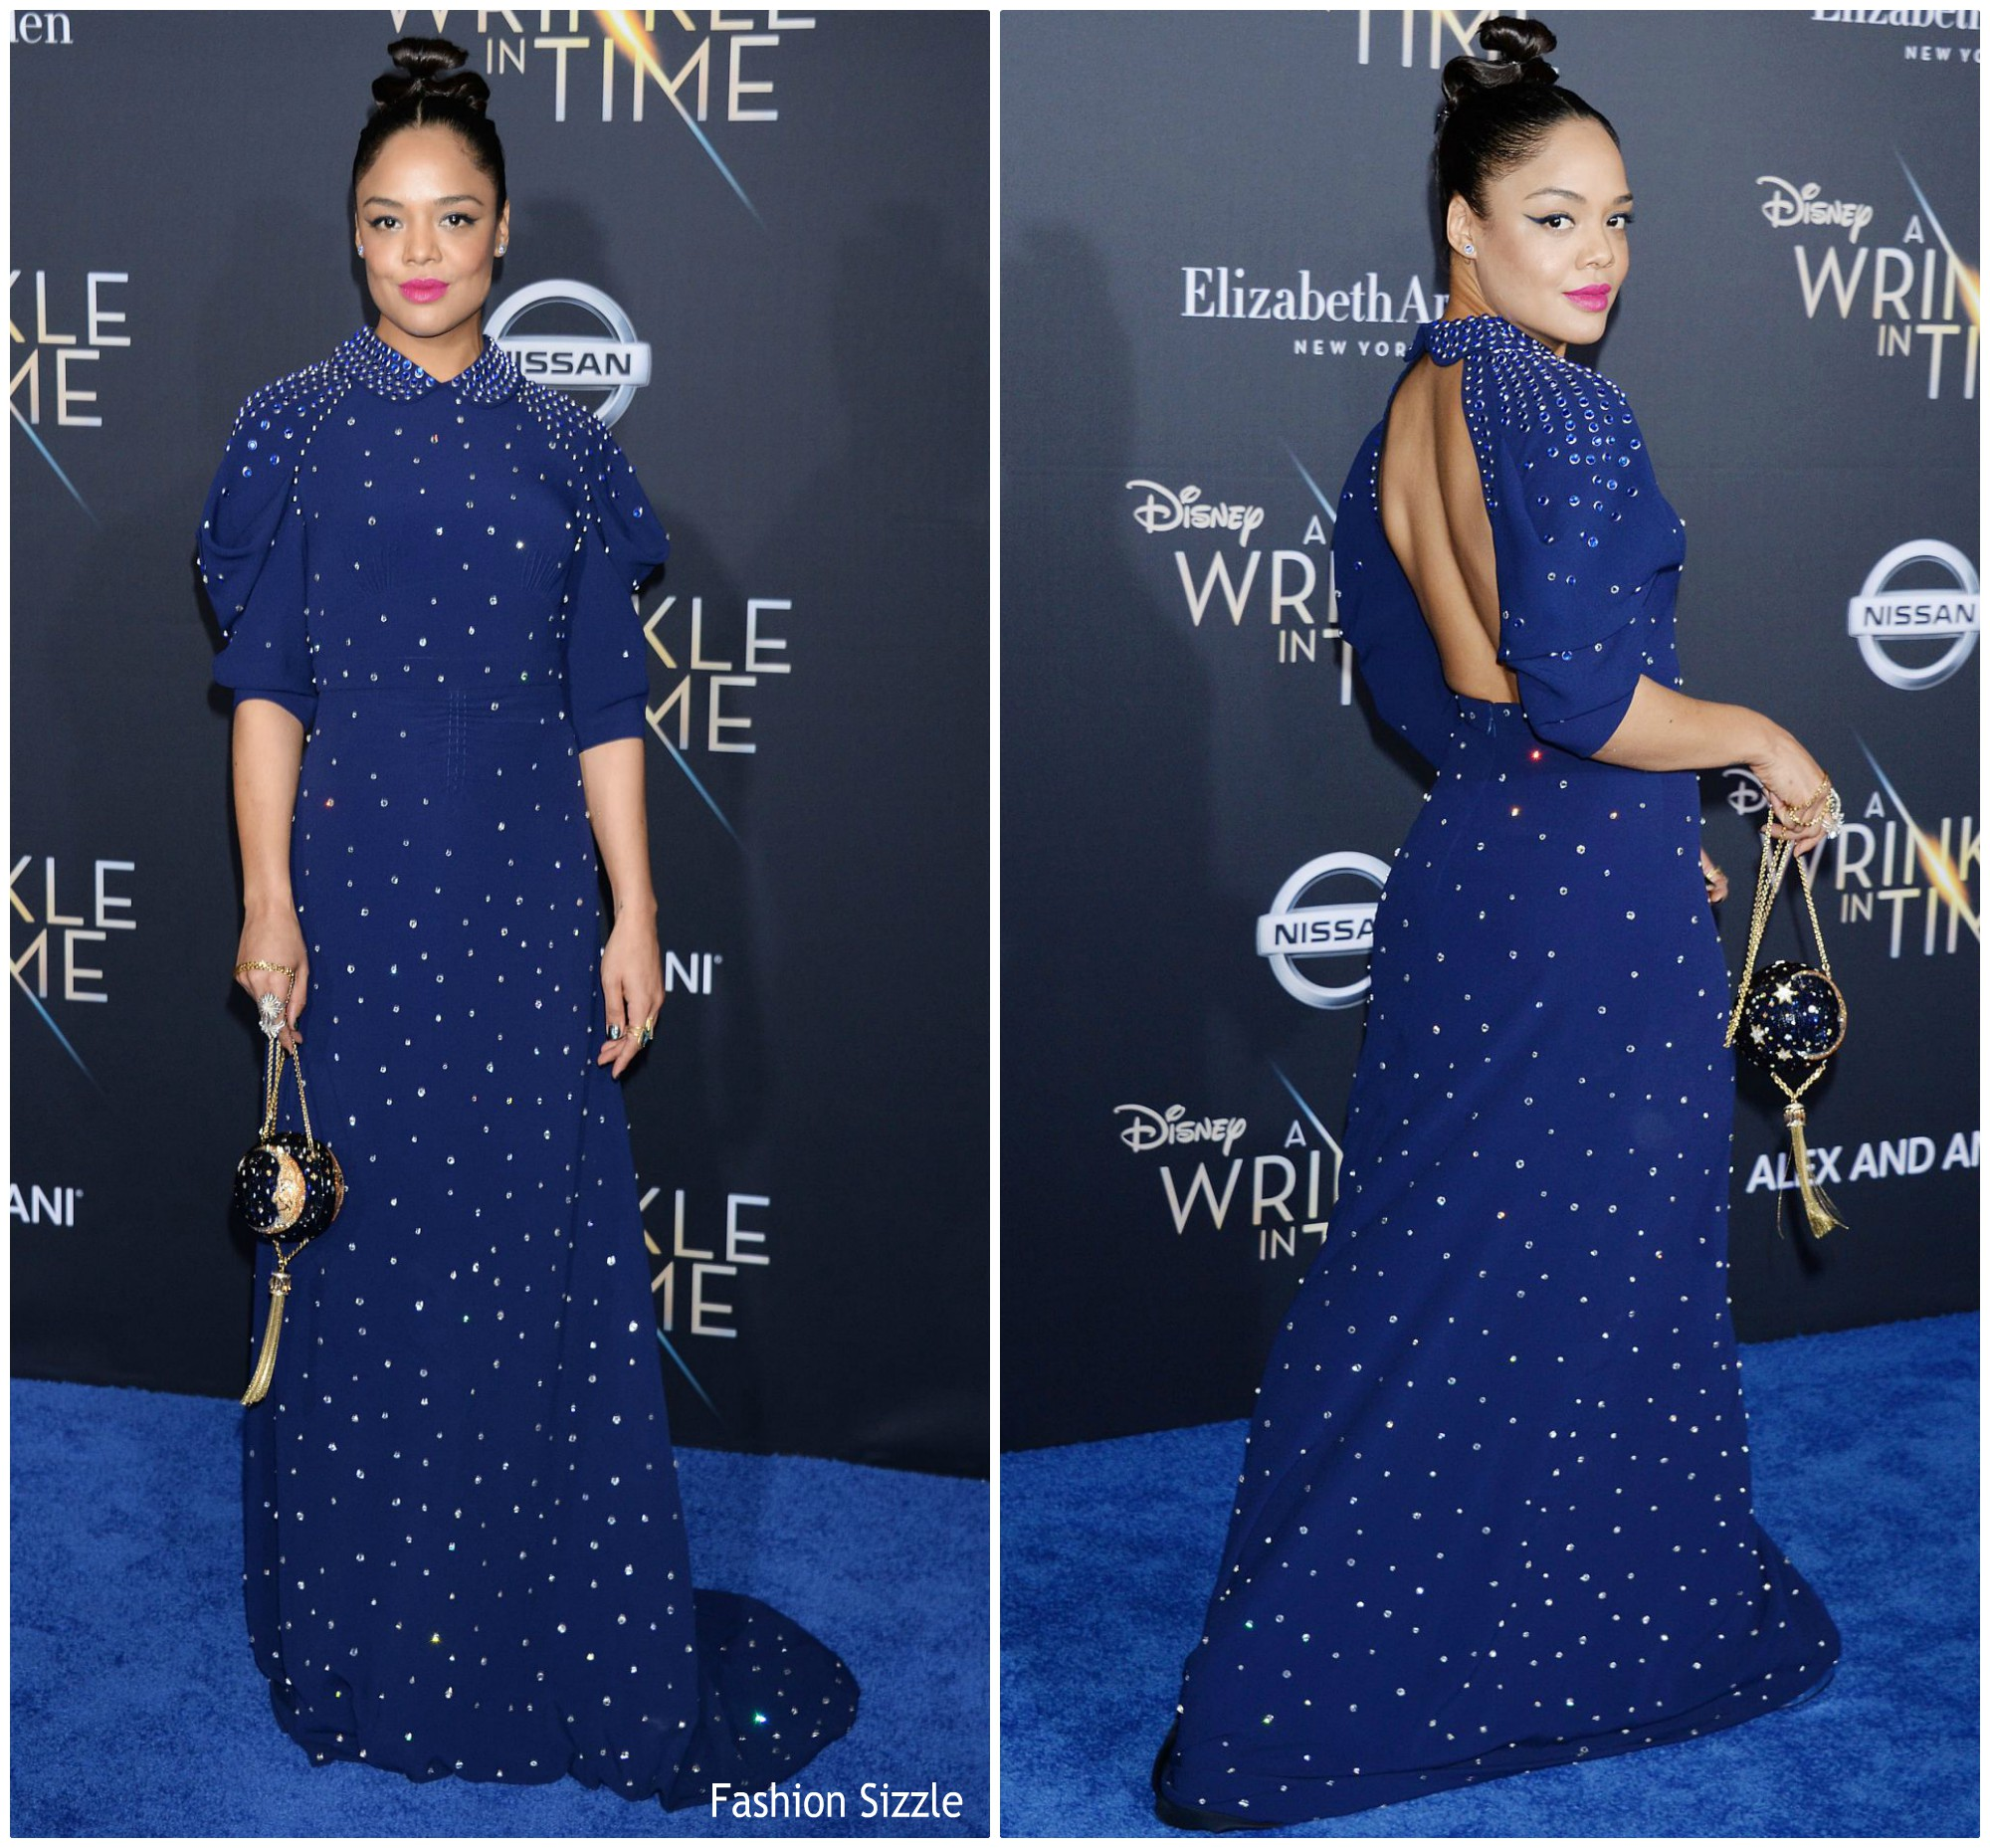 tessa-thompson-in-miu-miu-a-wrinkle-in-time-la-premiere